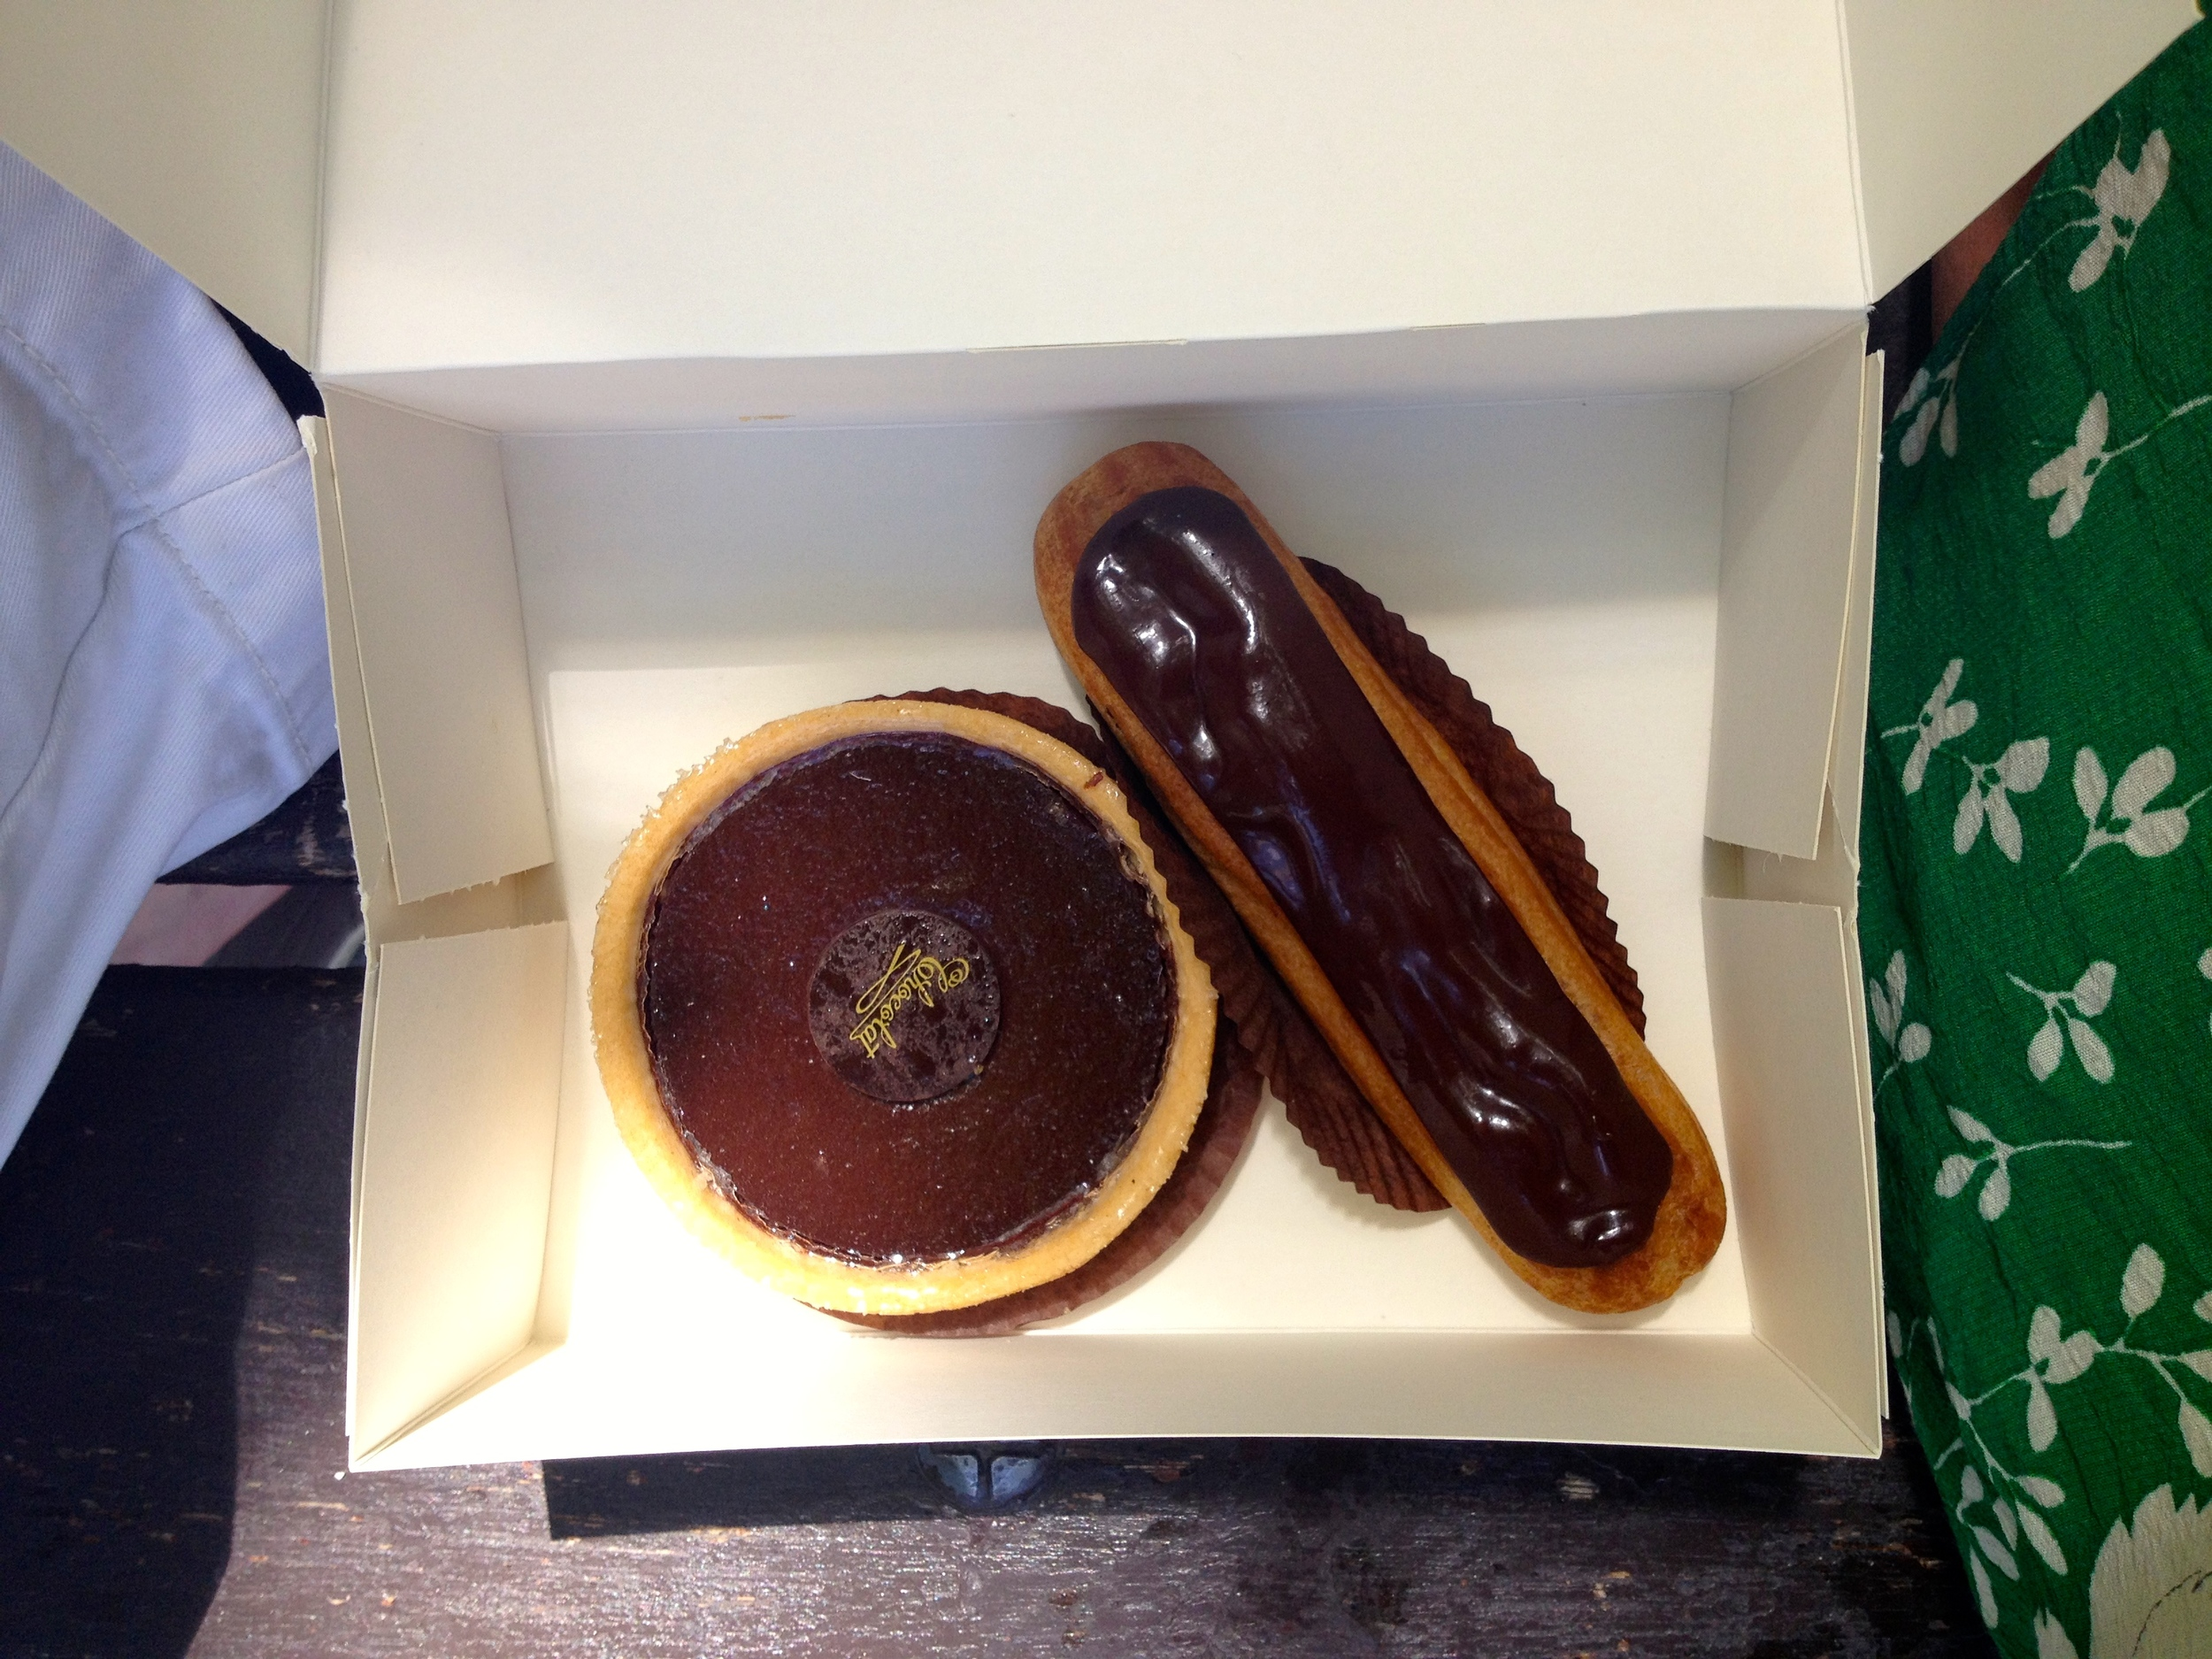 In case it's not clear, I like chocolate. Here we have a tarte au chocolat + éclair. Miam miam!